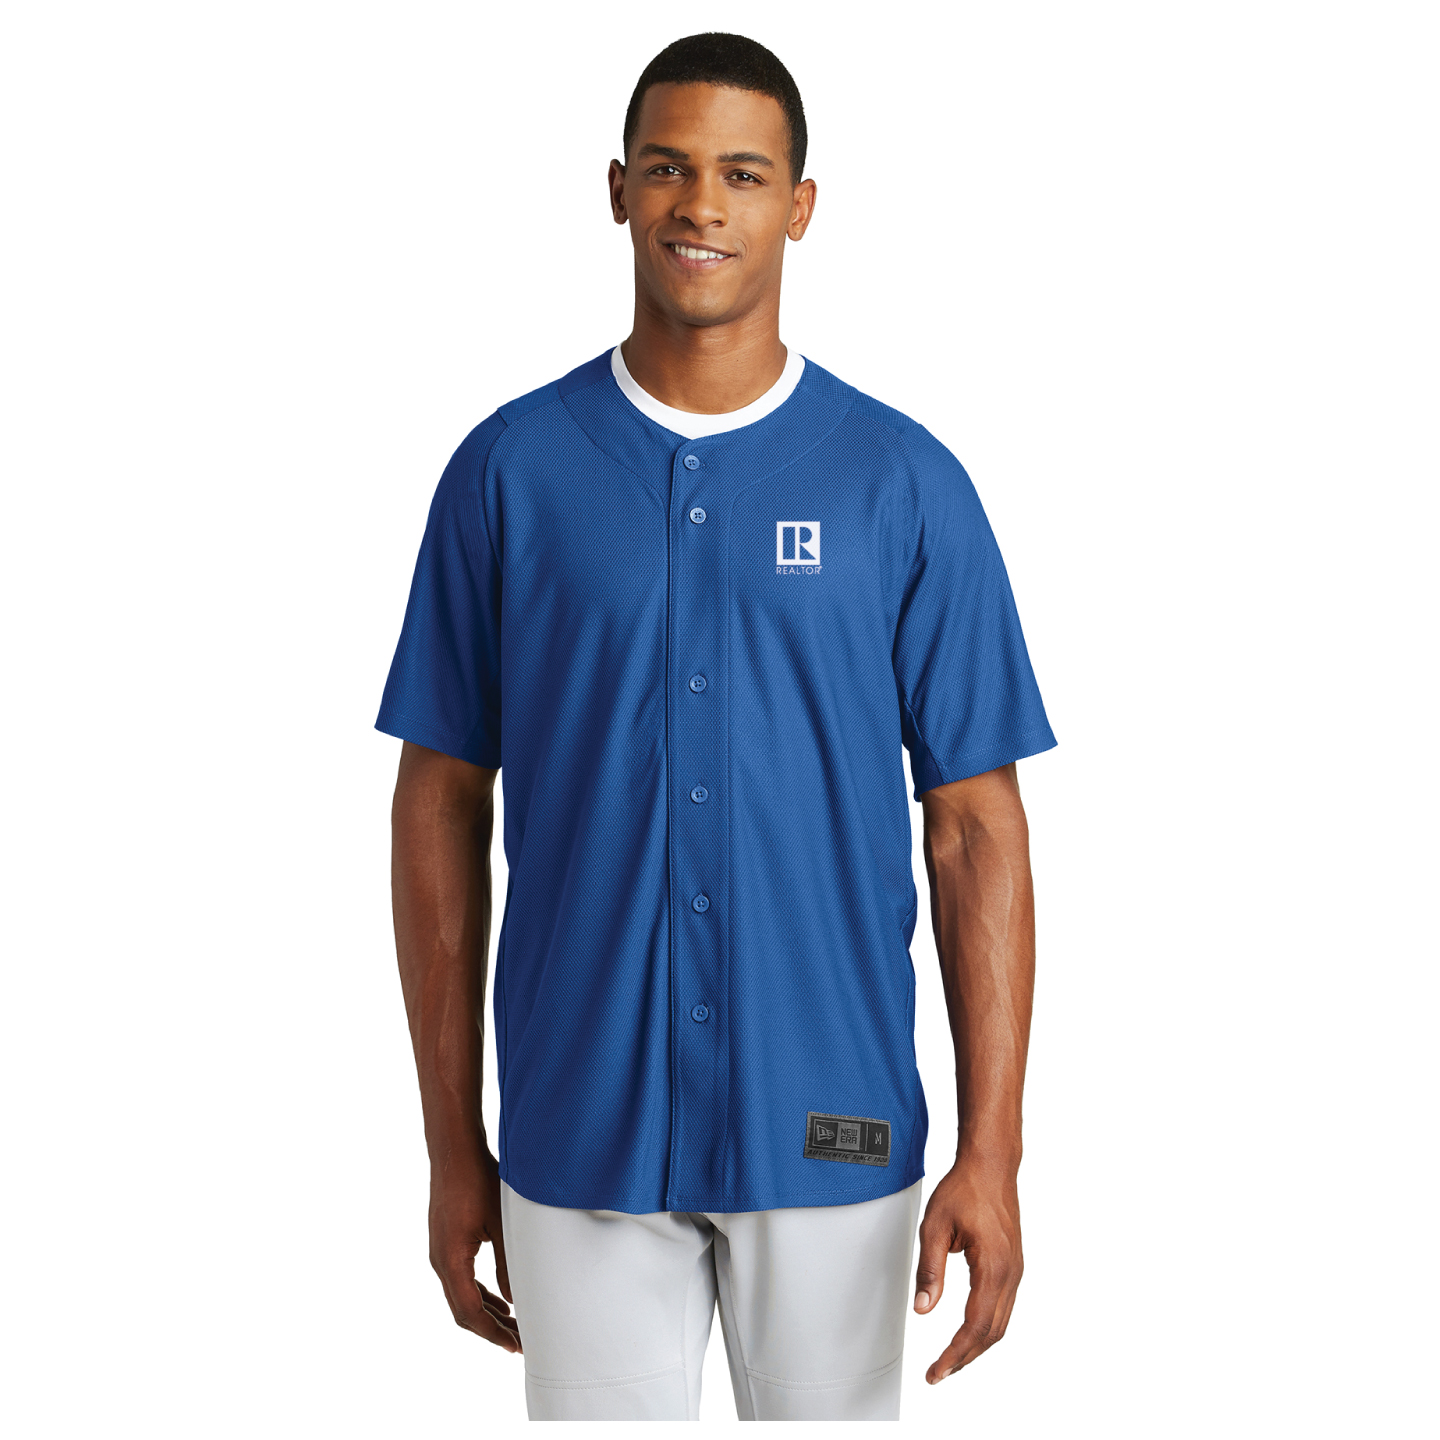 New Era Diamond Era Full-Button Jersey - RCG4663